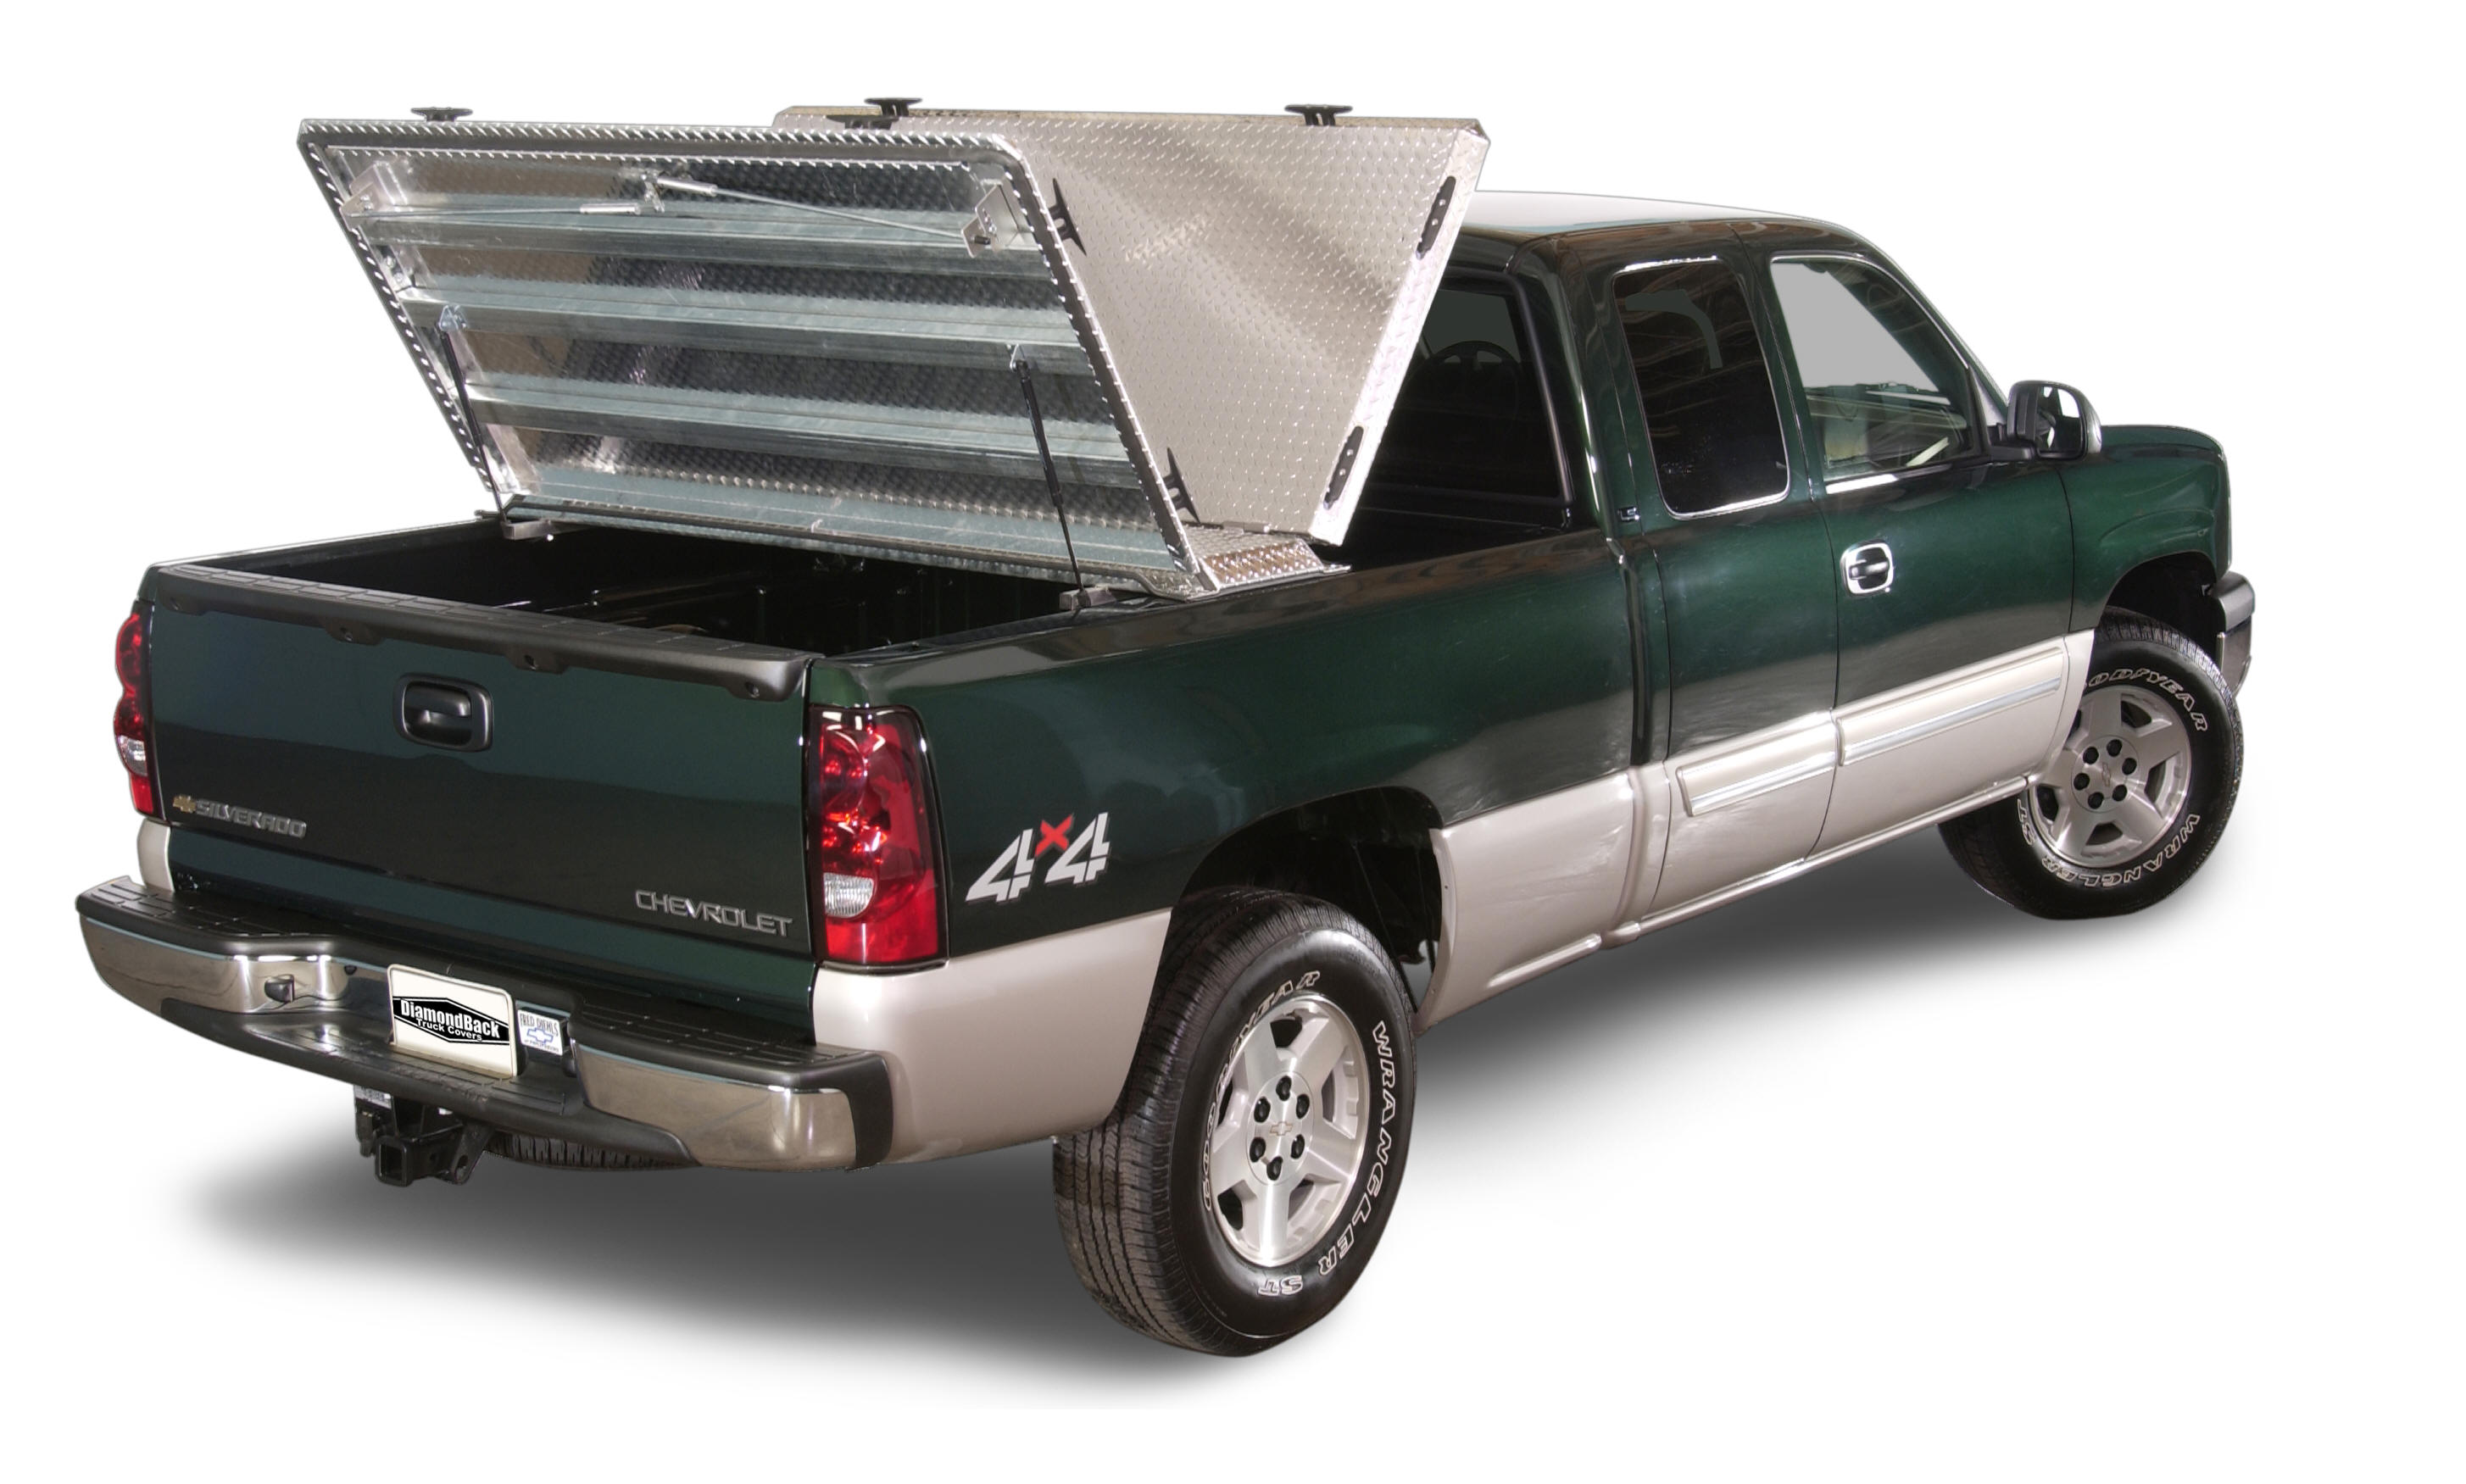 haul on top the diamondback hd truck bed cover